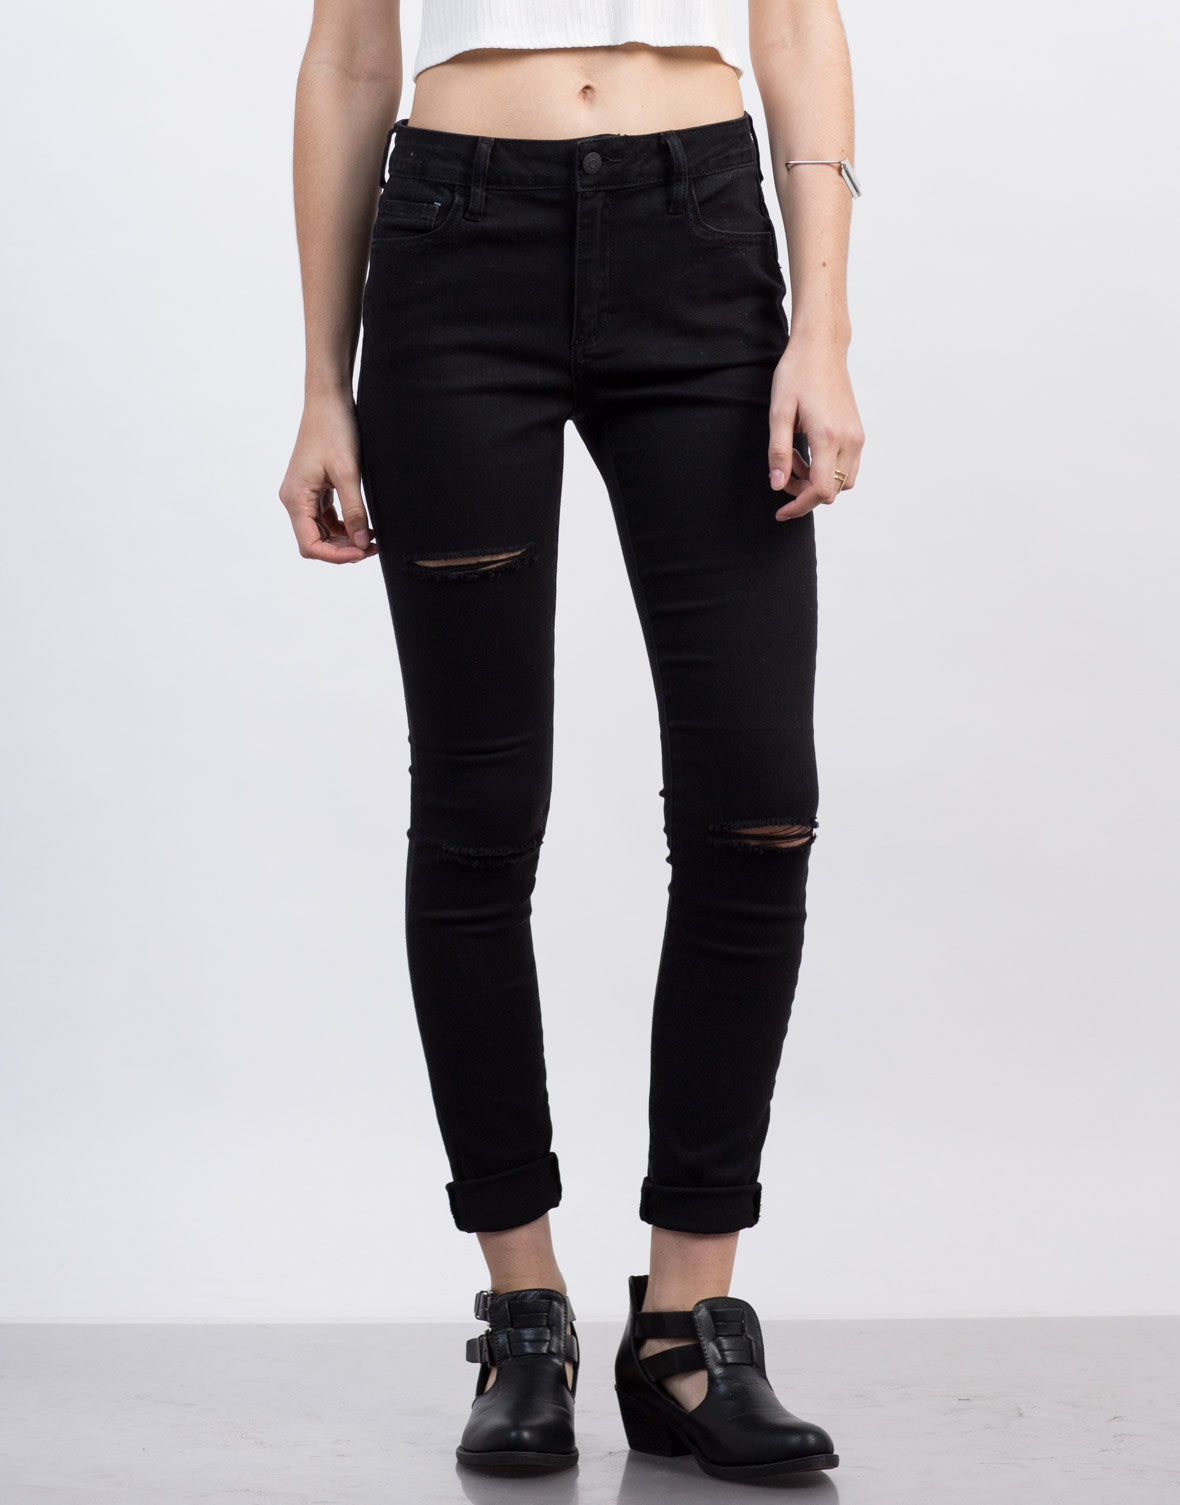 Front View of Ripped Black Skinny Jeans